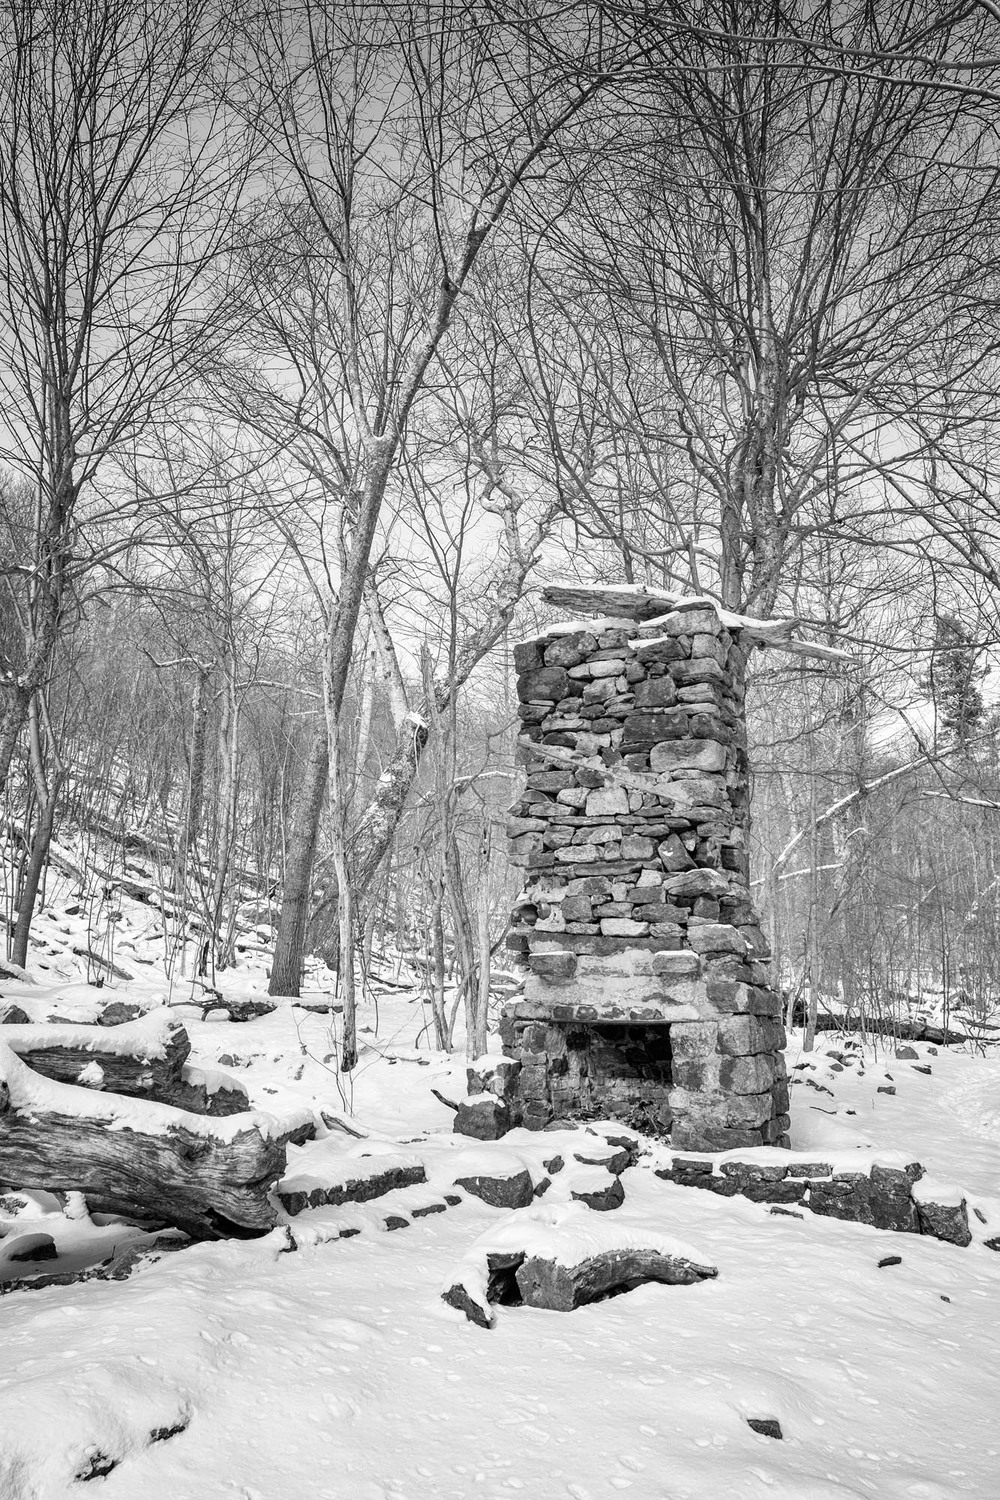 The fireplace is all that remains of previous inhabitants in the park.